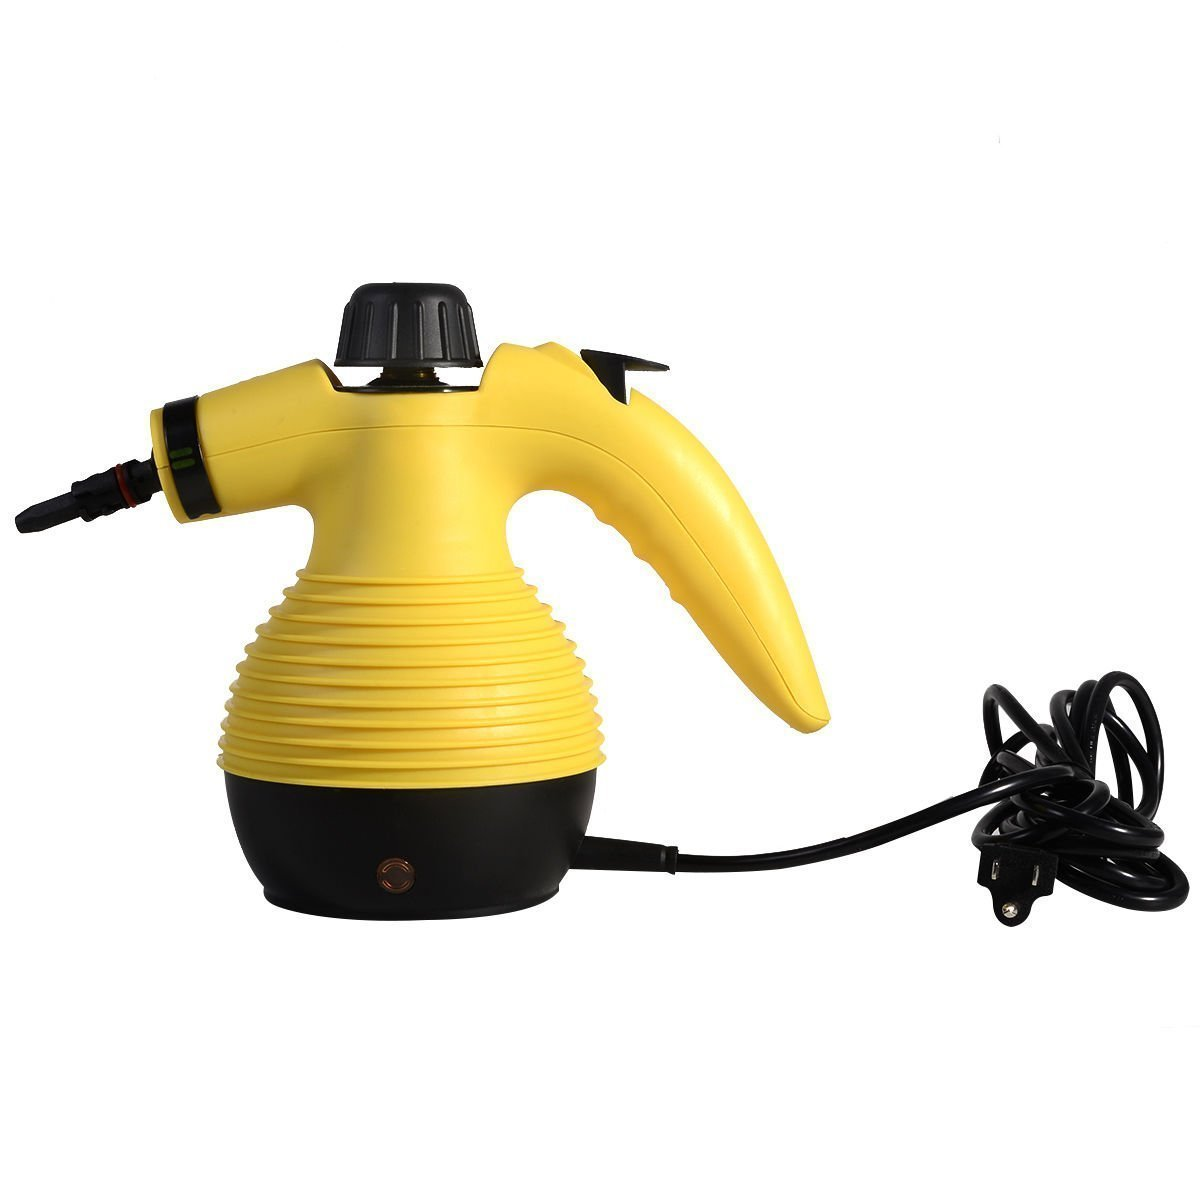 Amazon.com   1050w Handheld Steam Cleaner Portable Multi Purpose Steamer  With Attachments New